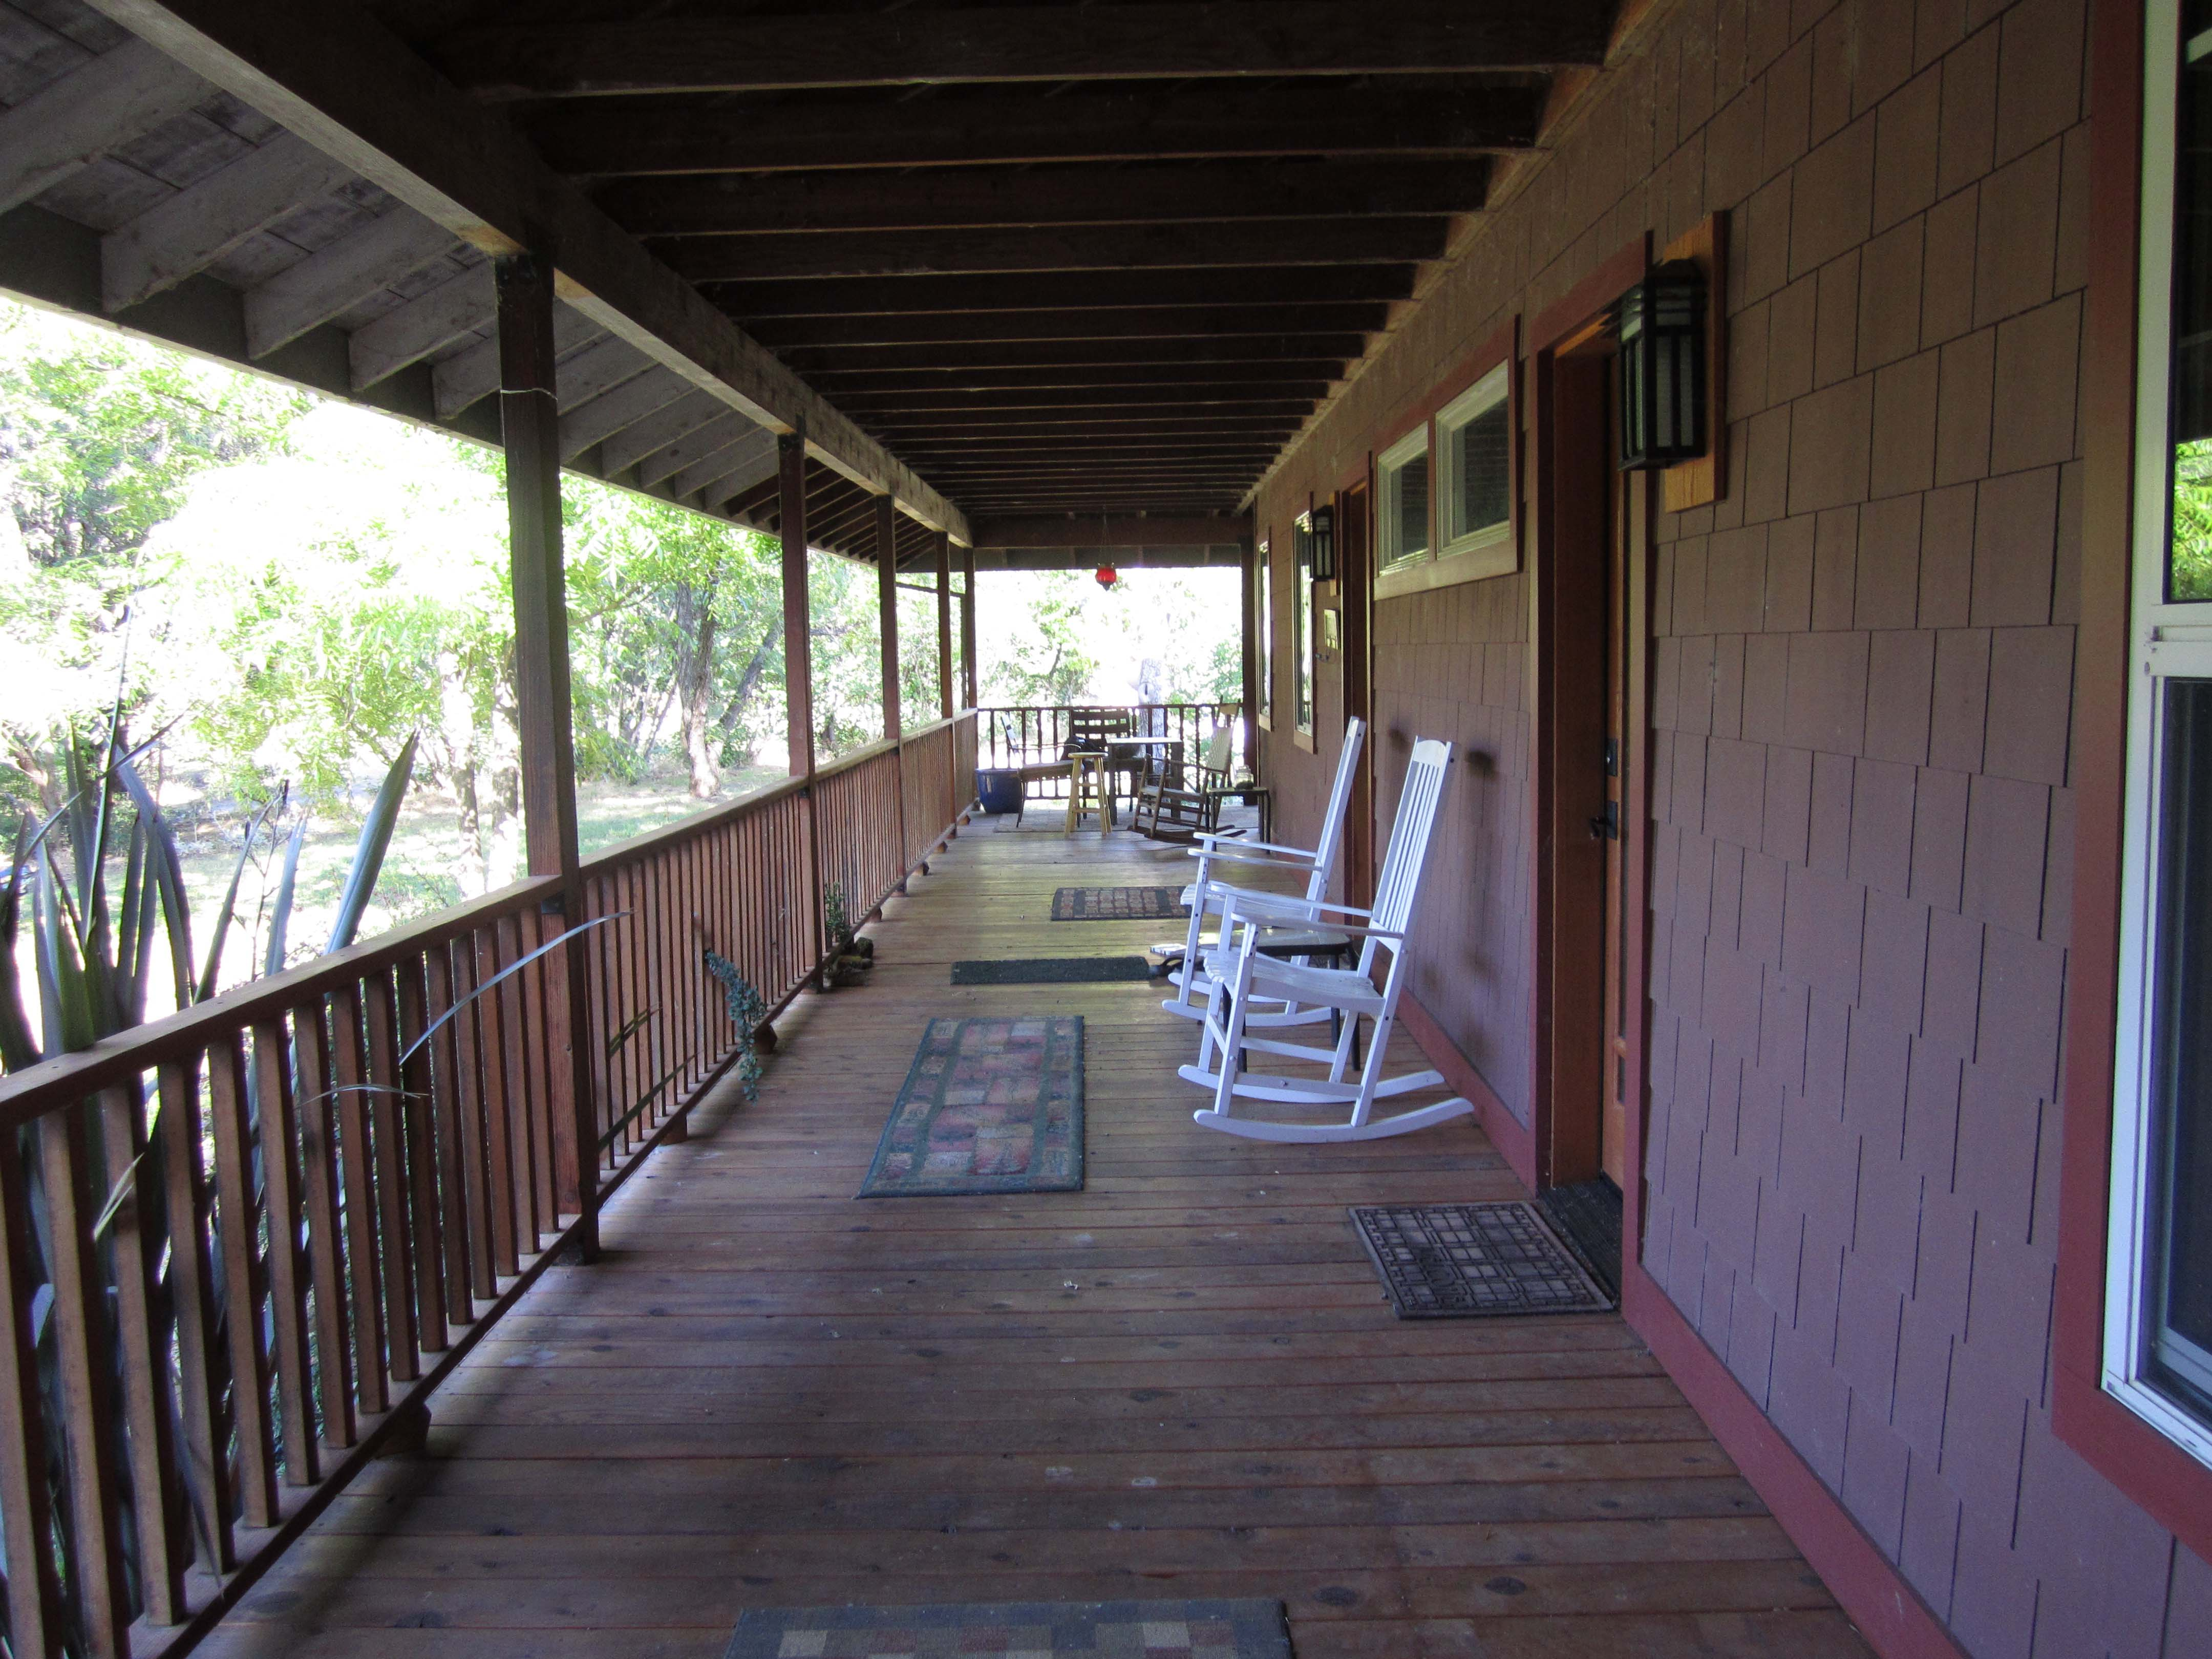 Cache-Creek-Inn-Porch.jpg